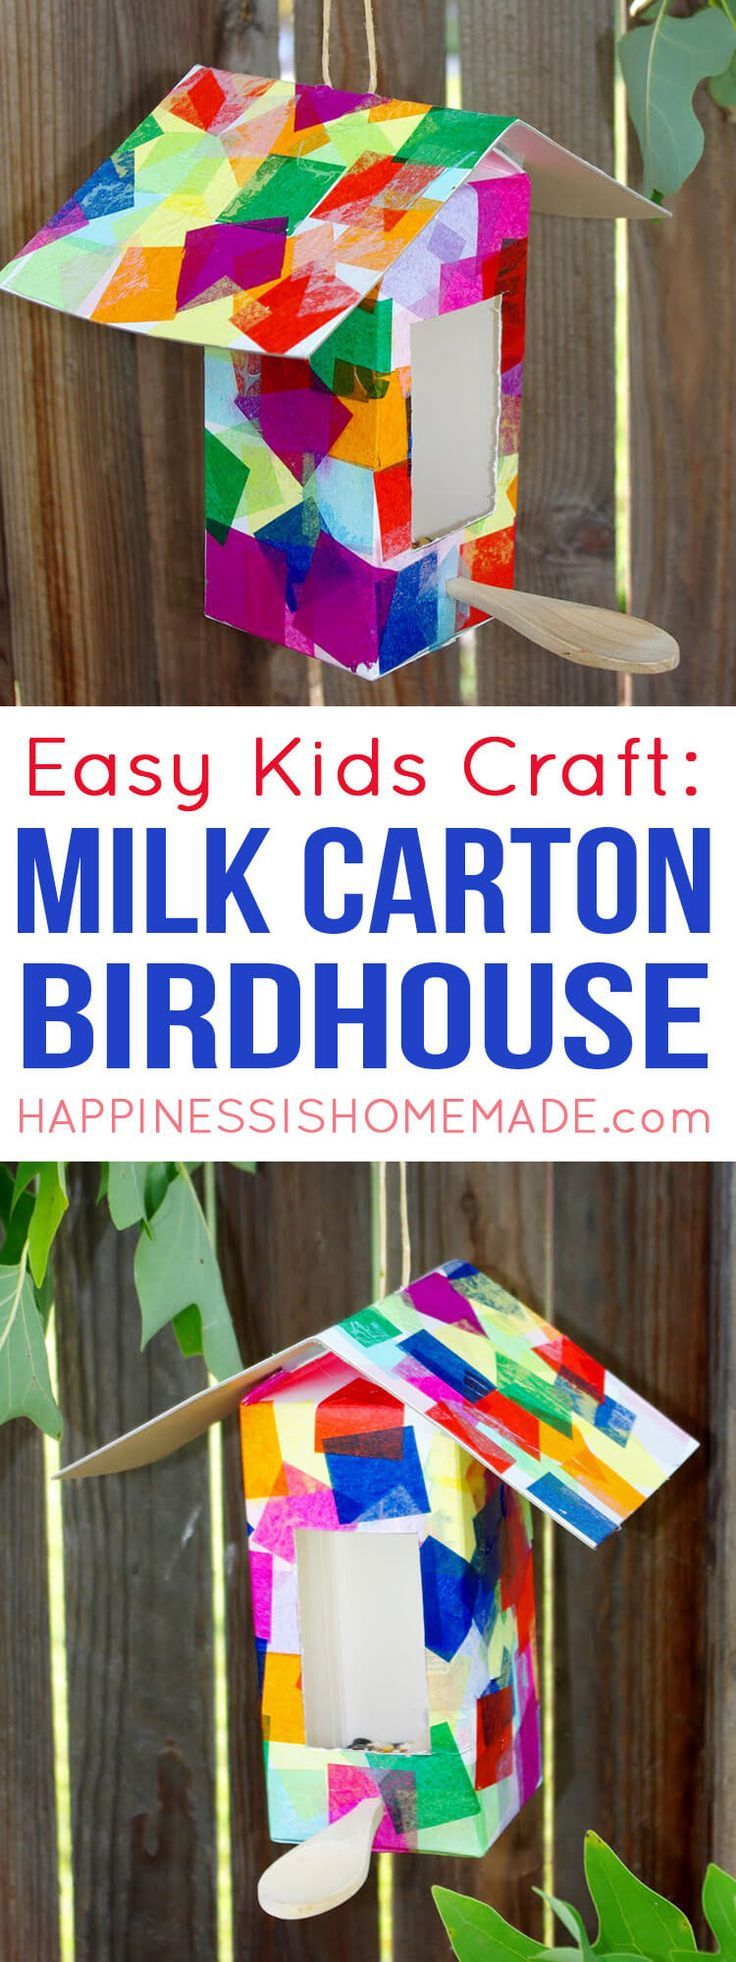 431 best images about happiness is homemade on pinterest for Christmas crafts with milk cartons